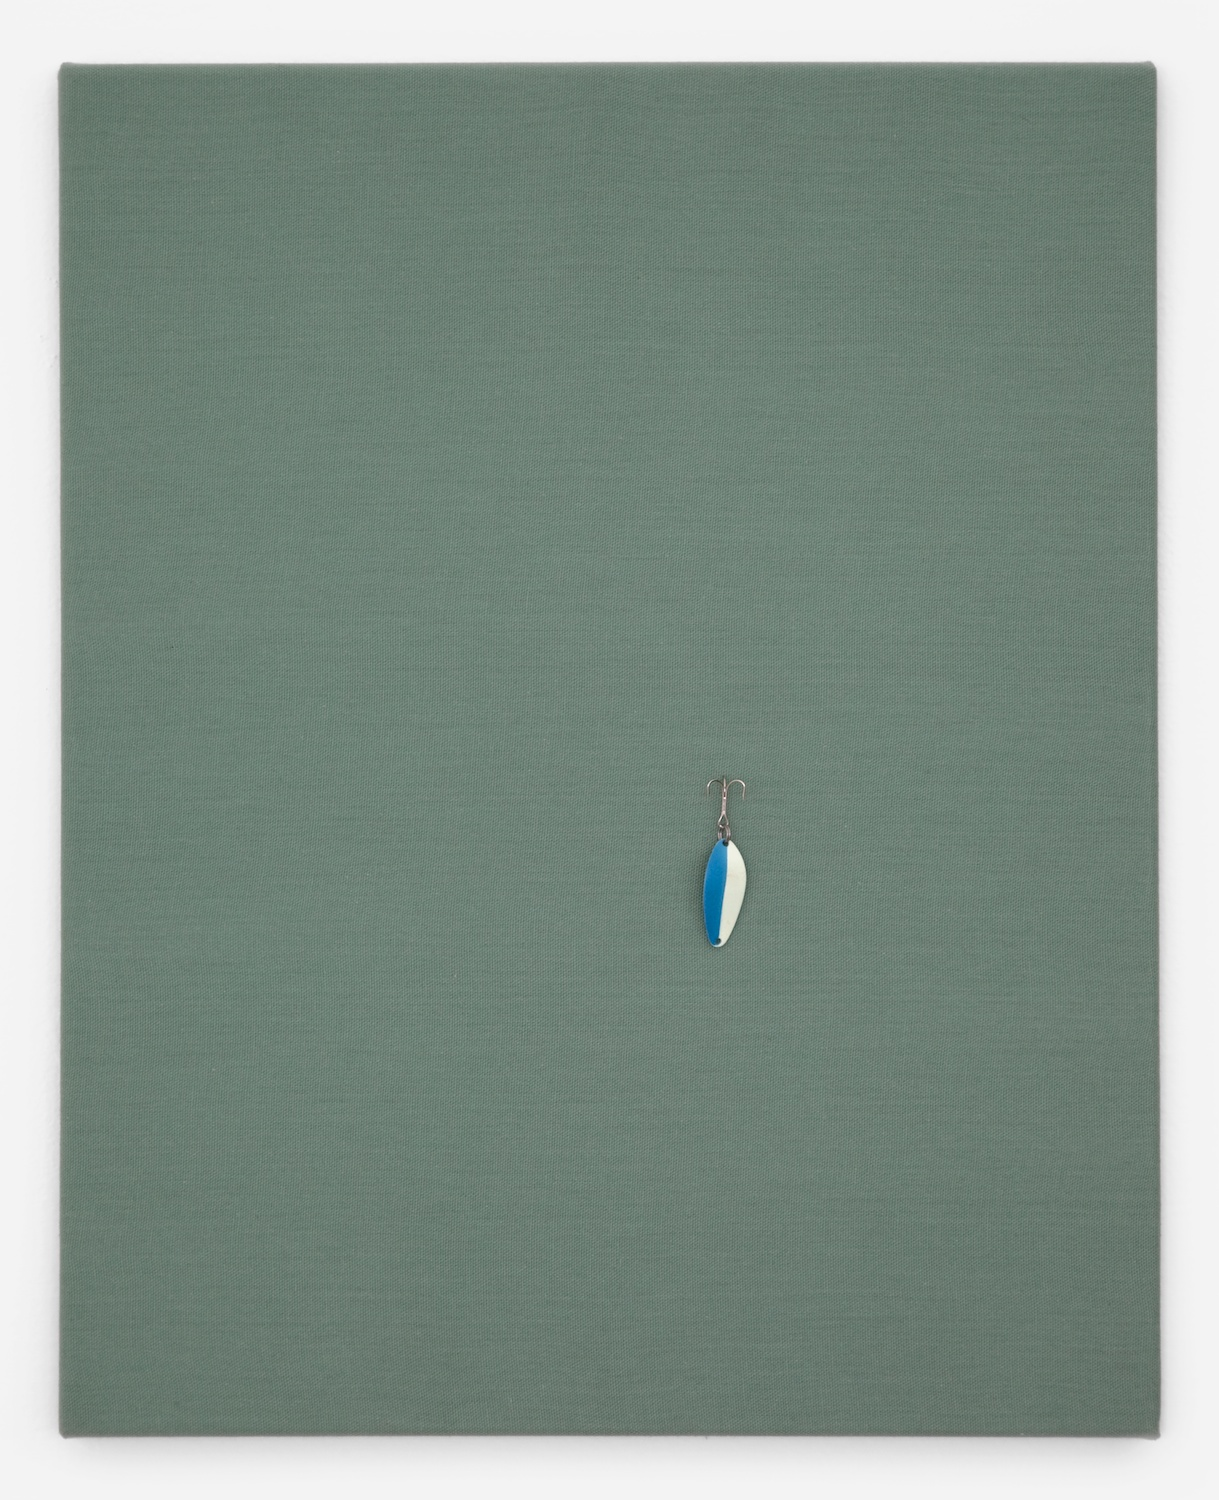 Paul Cowan  Untitled  2011 Fishing lure on canvas 20h x 16w in PC003